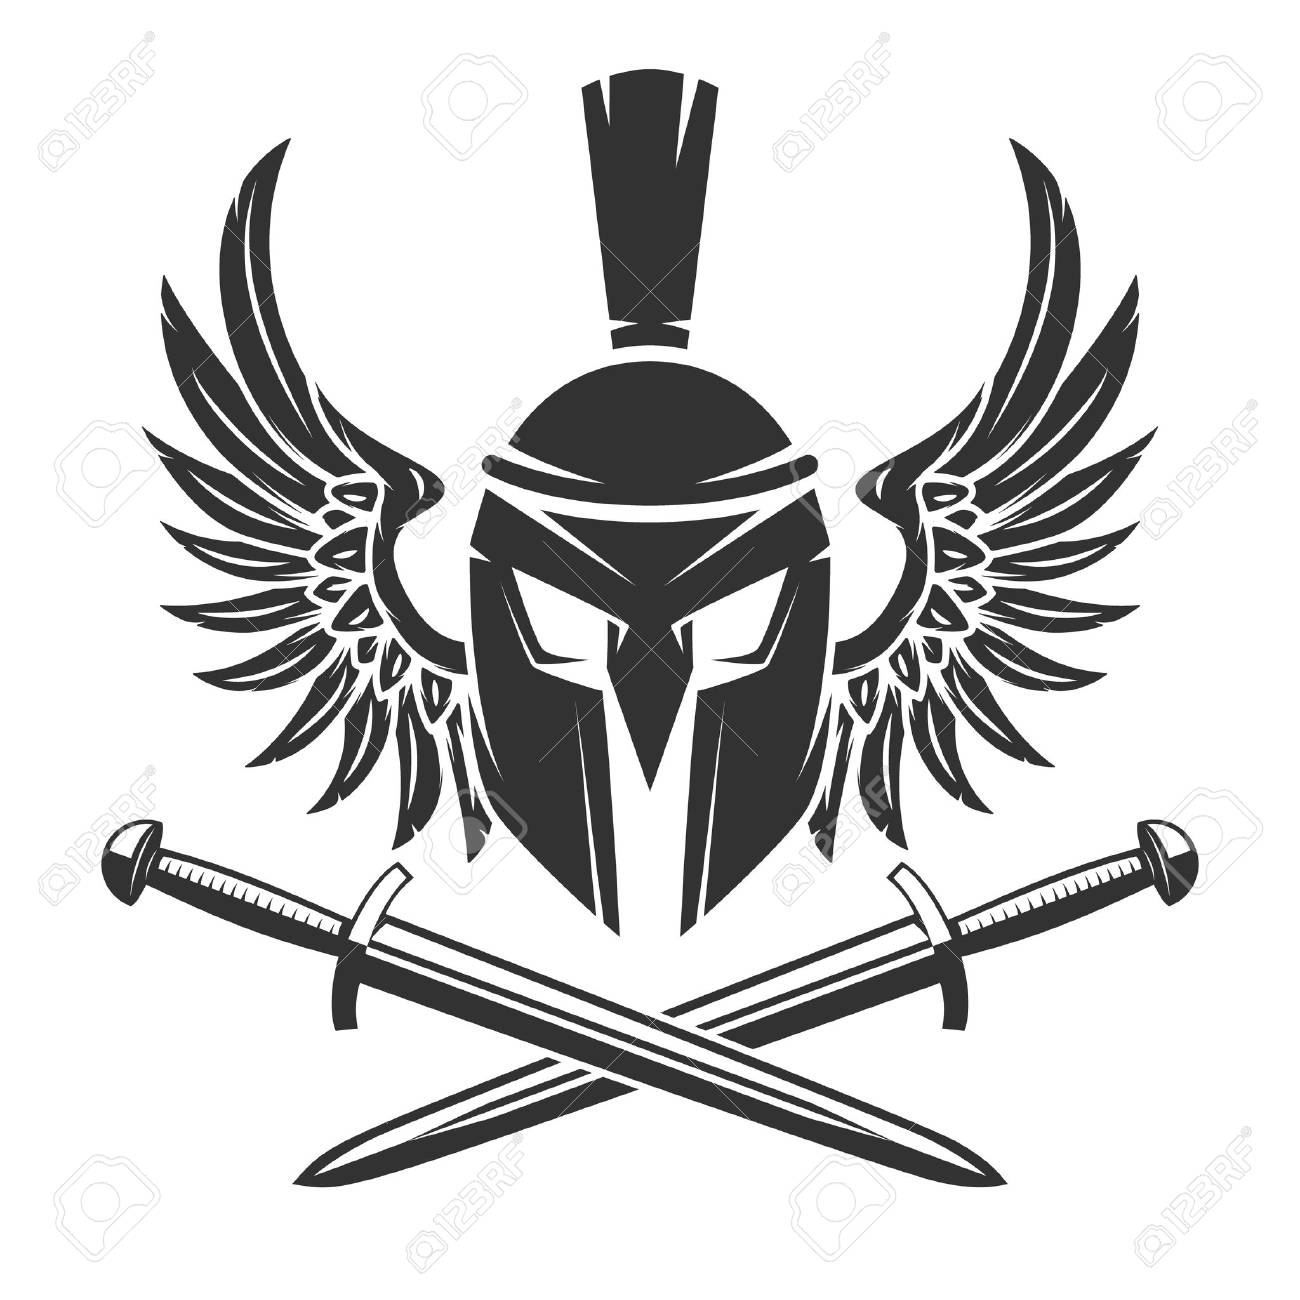 1300x1300 Spartan Helmet With Crossed Swords And Wings Isolated On White